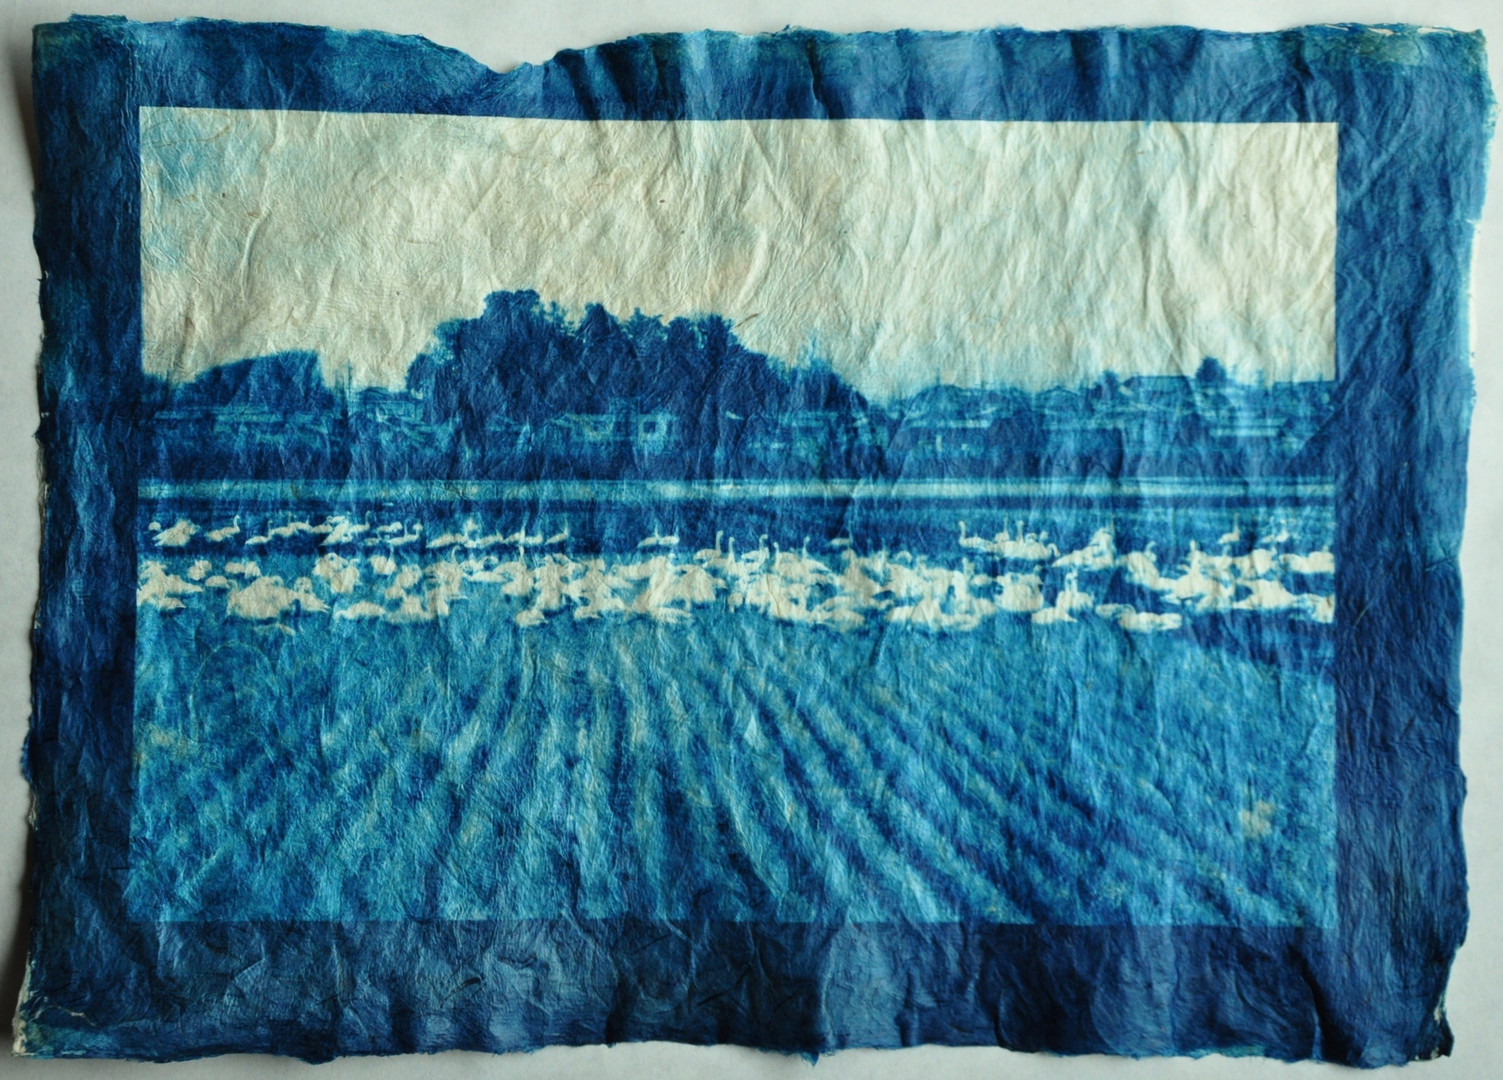 """Tranquil Water"" 穏やかな水面 Cyanotype Print on handmade Gampi Paper  H297×W420mm/H11.69×W16.54in  Edition 5/10"